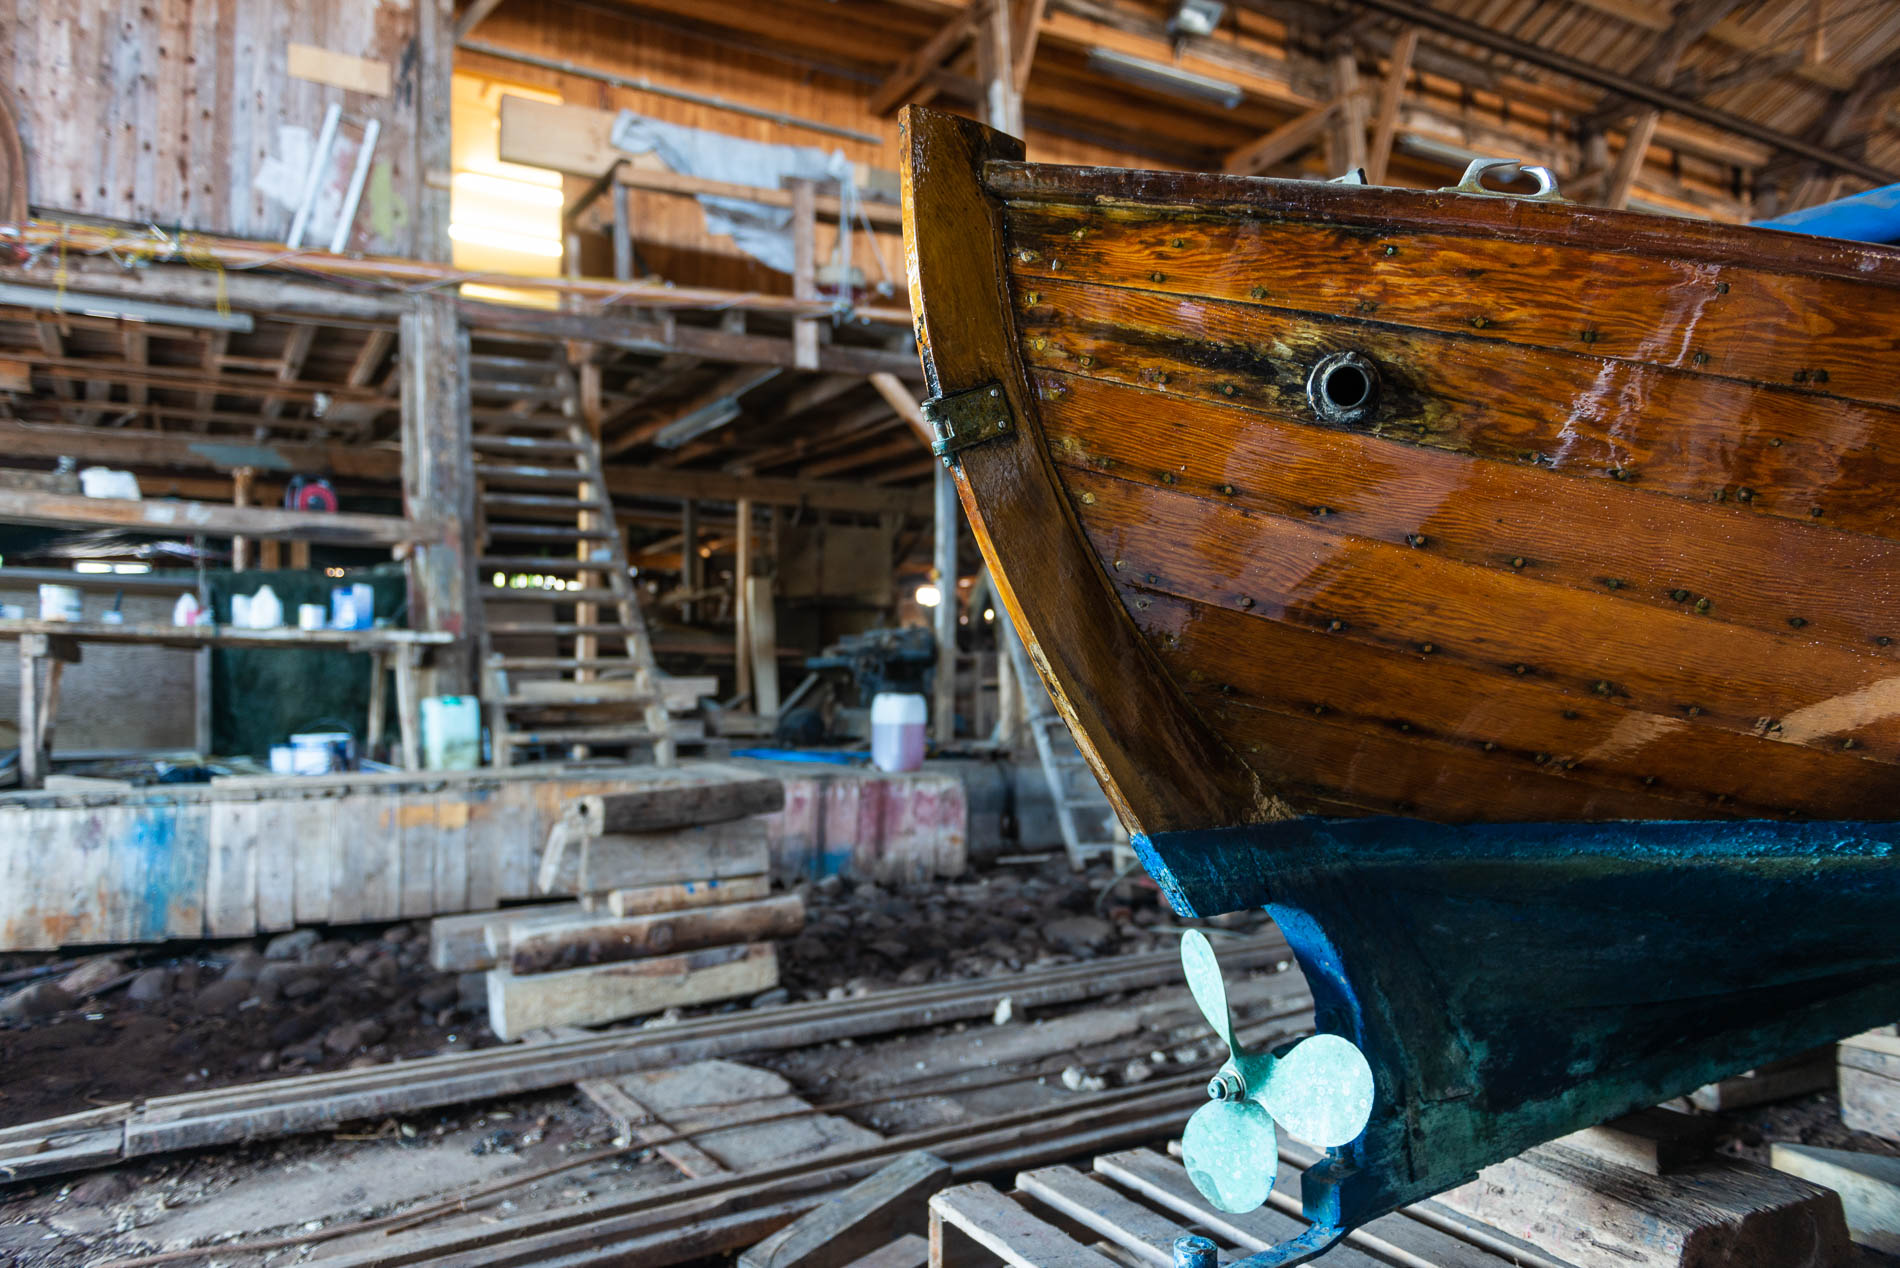 The wooden boat building